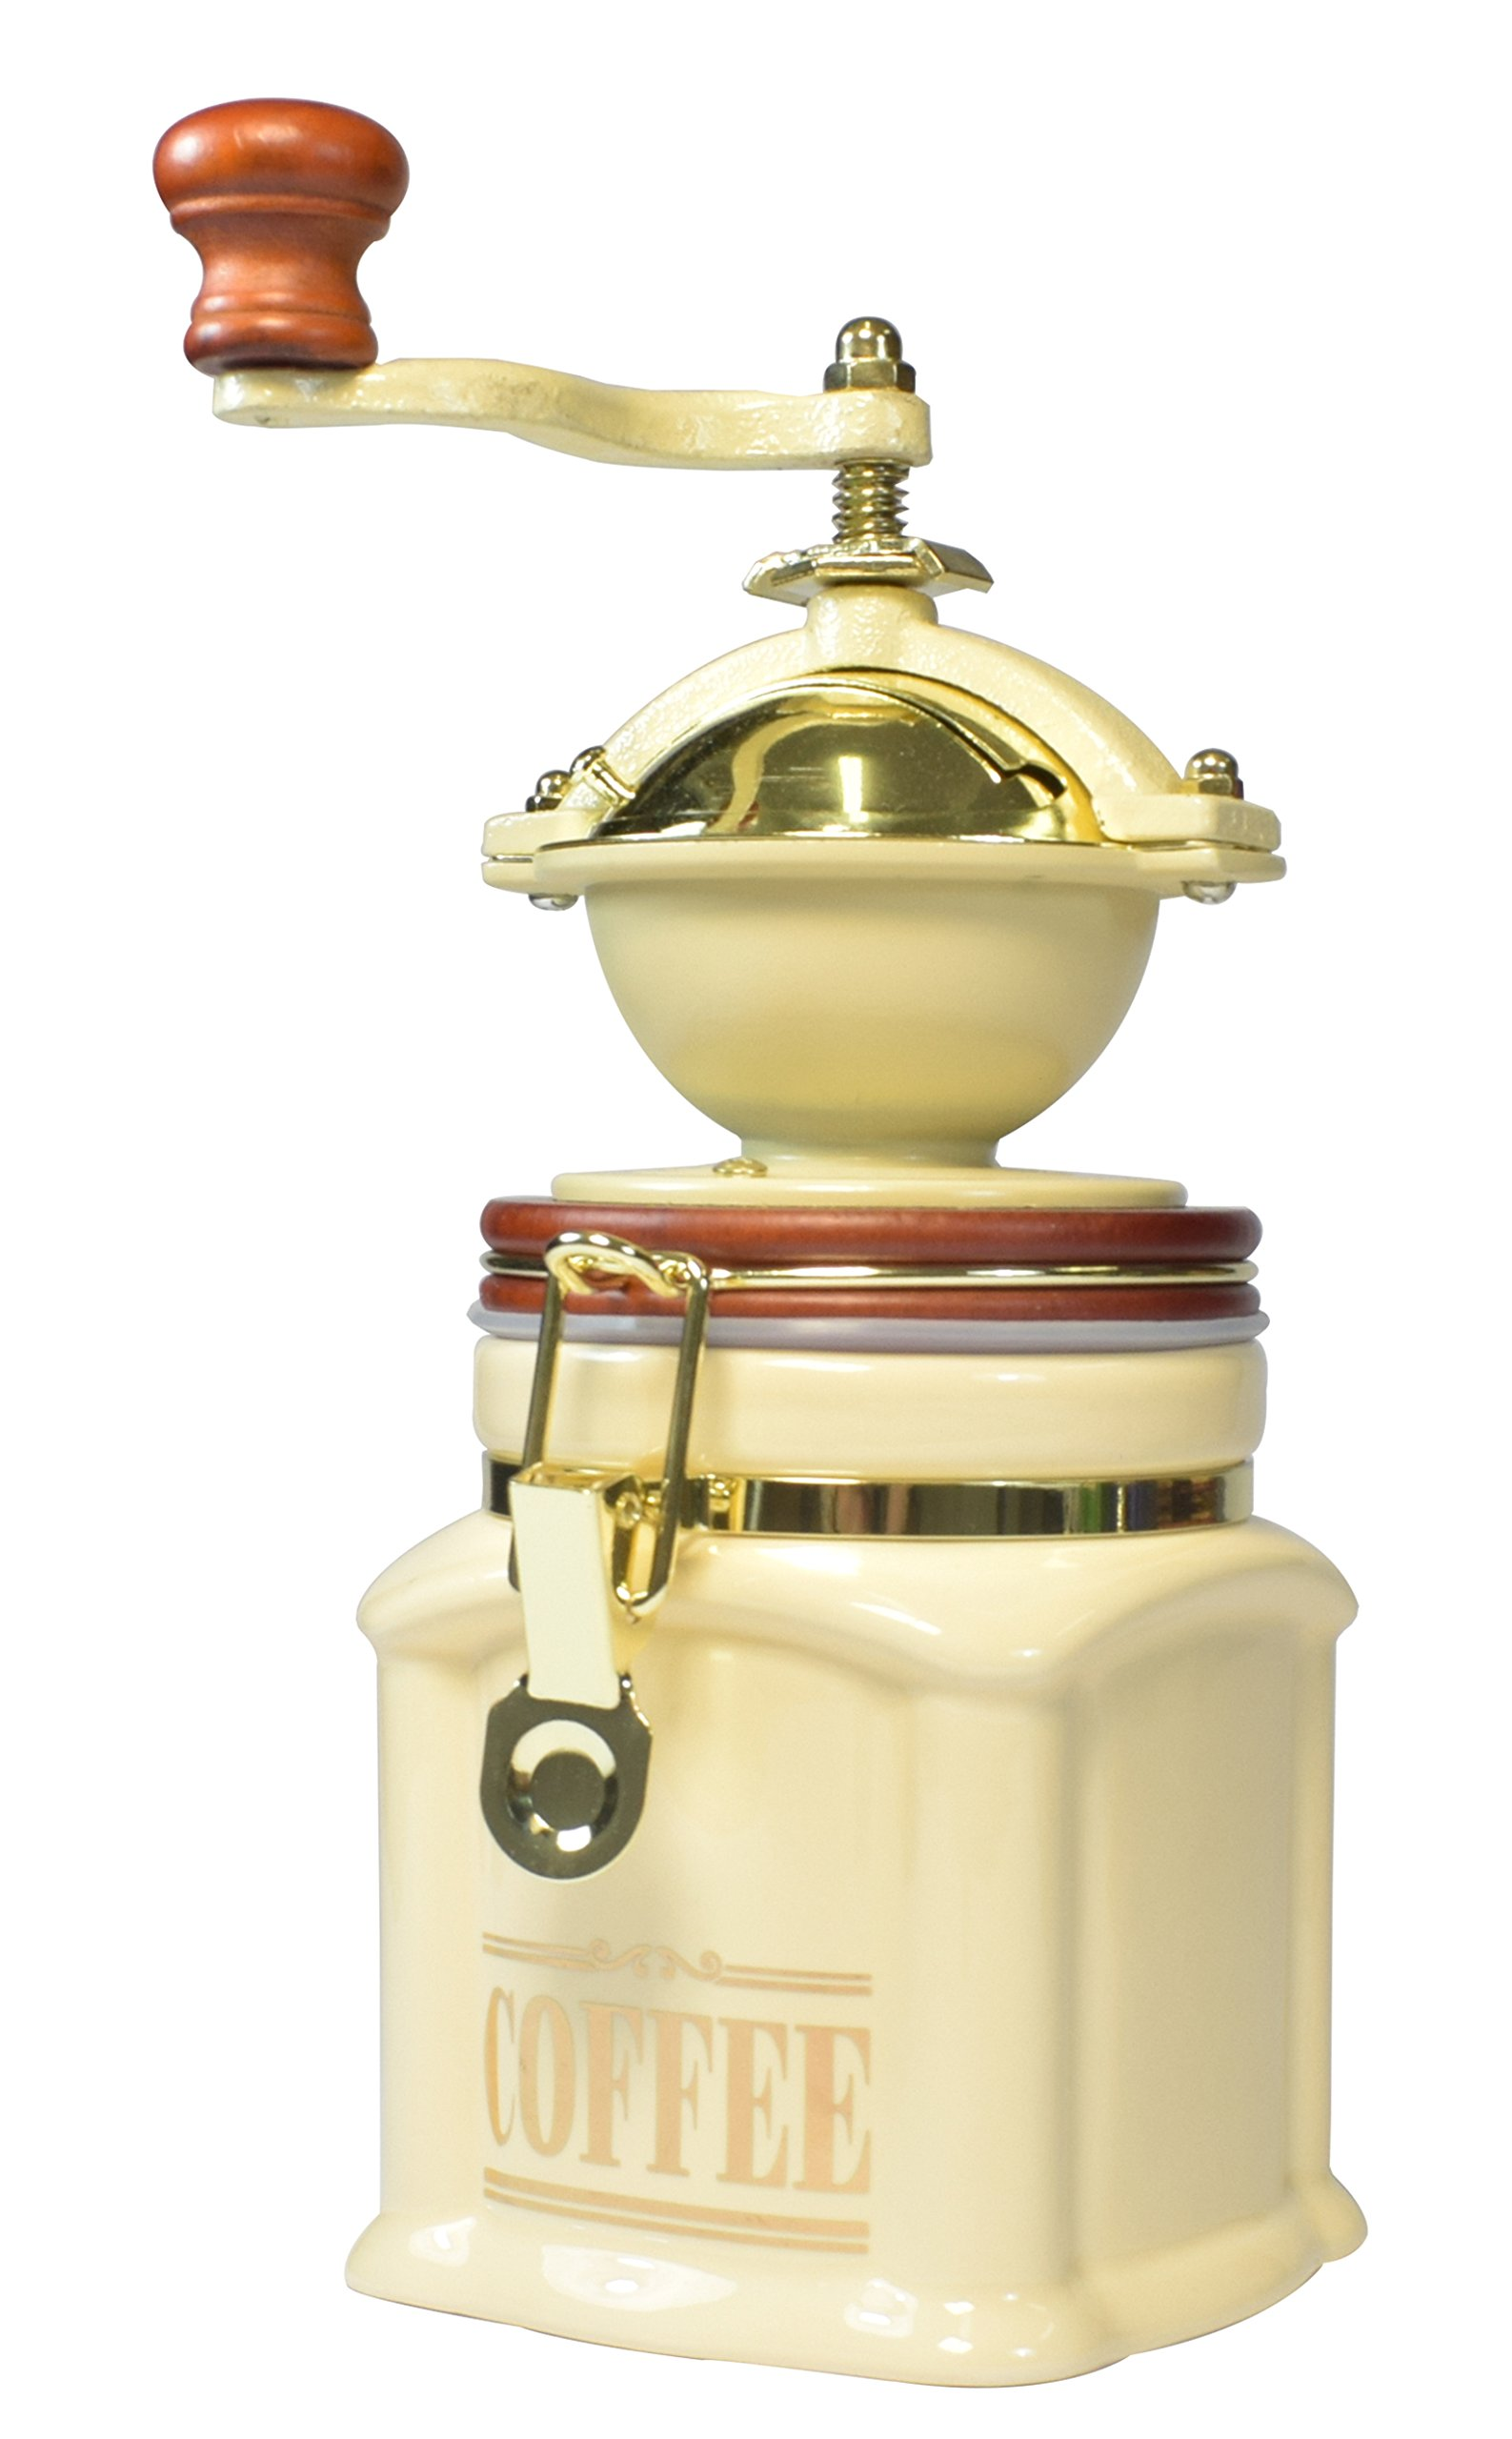 Bisetti 61531 Vivalto Coffee Grinder, Cream